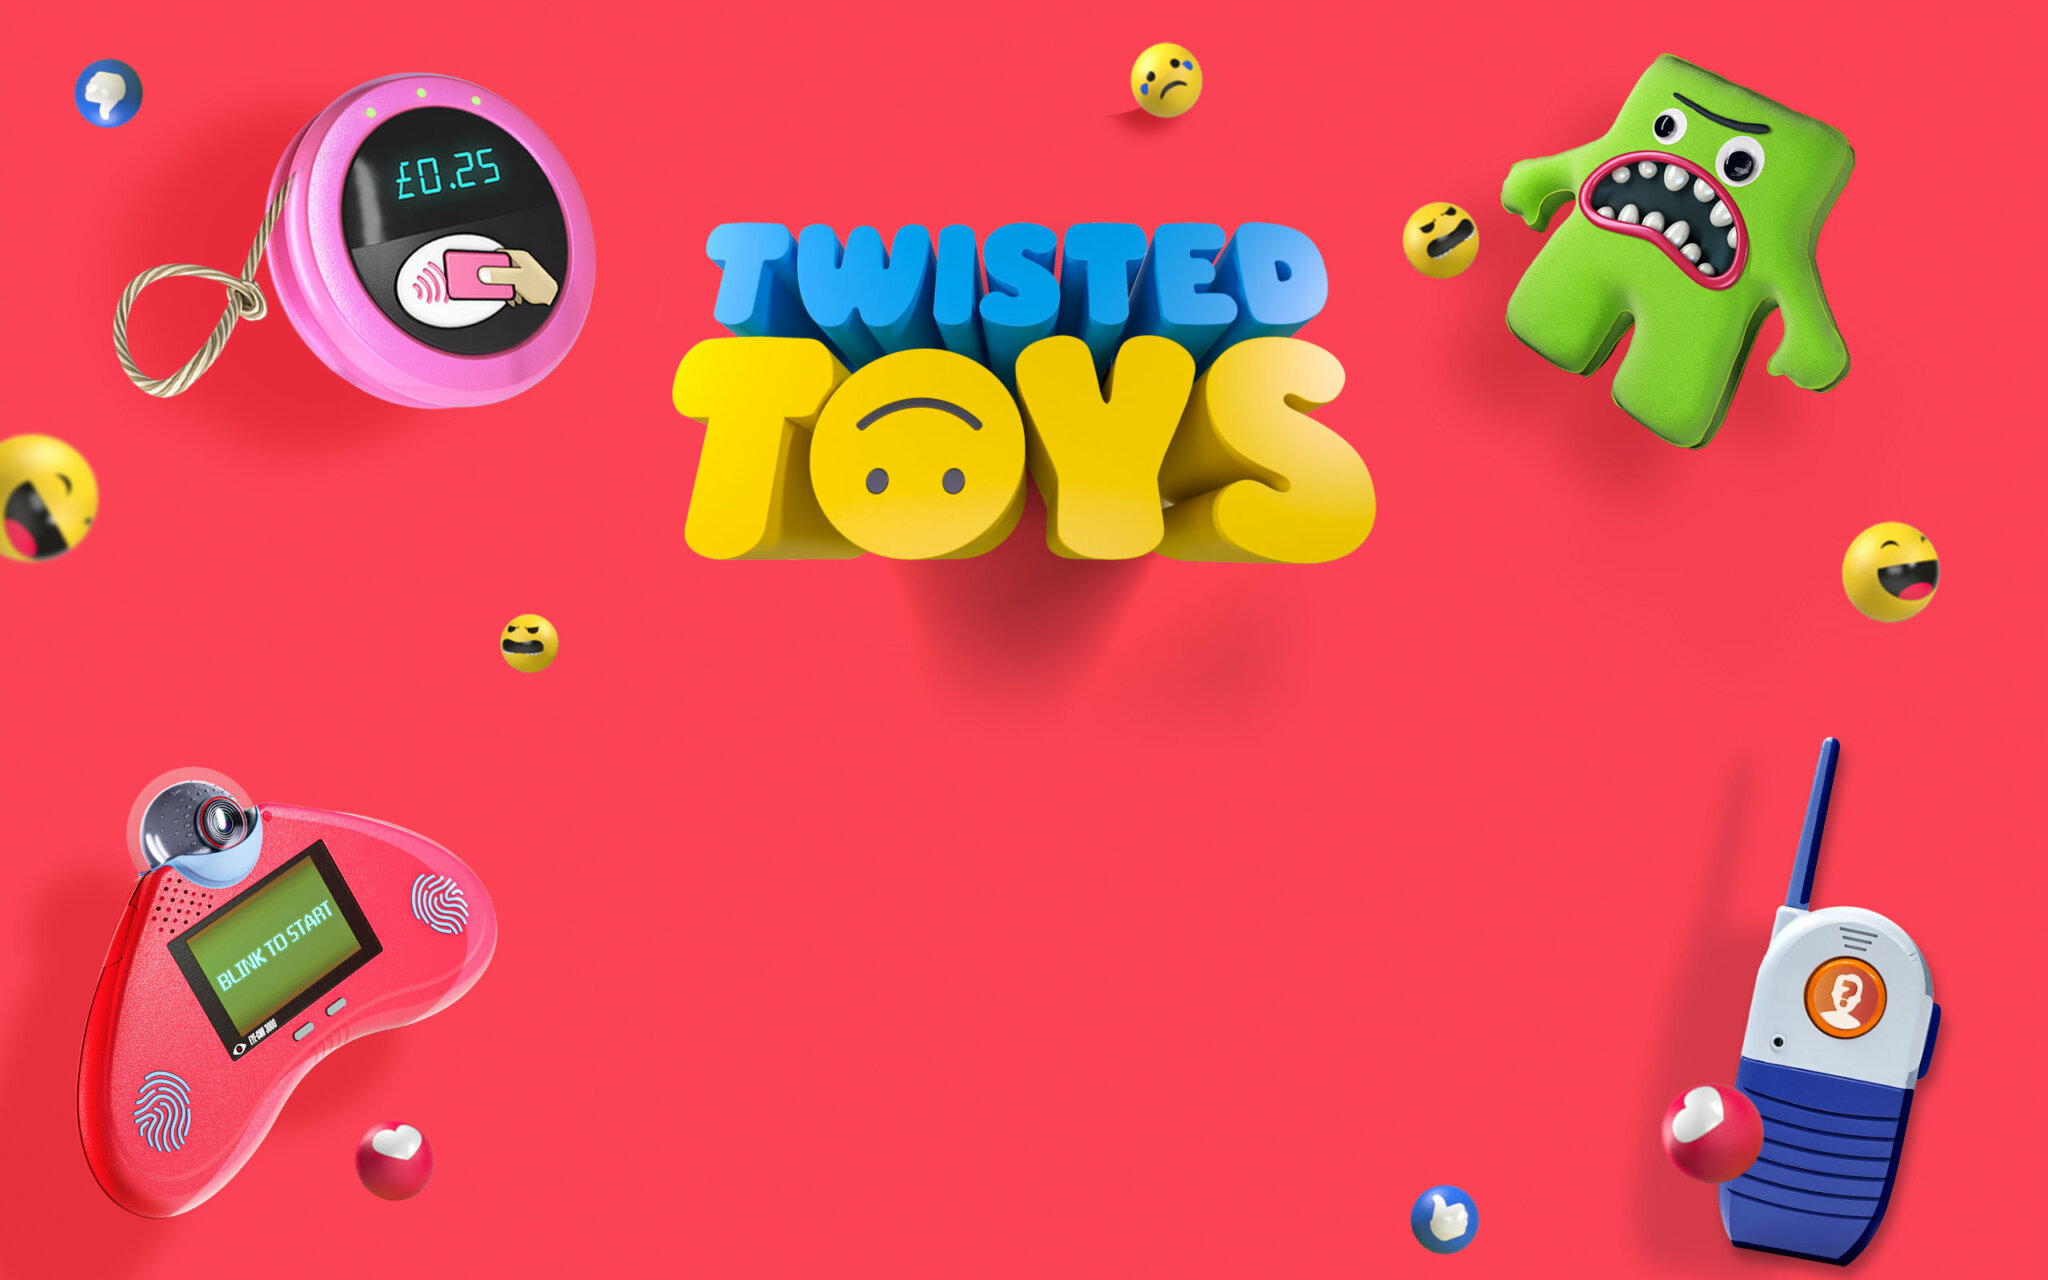 Twisted Toys background with 4 mocked up toys and the Twisted Toys logo on it